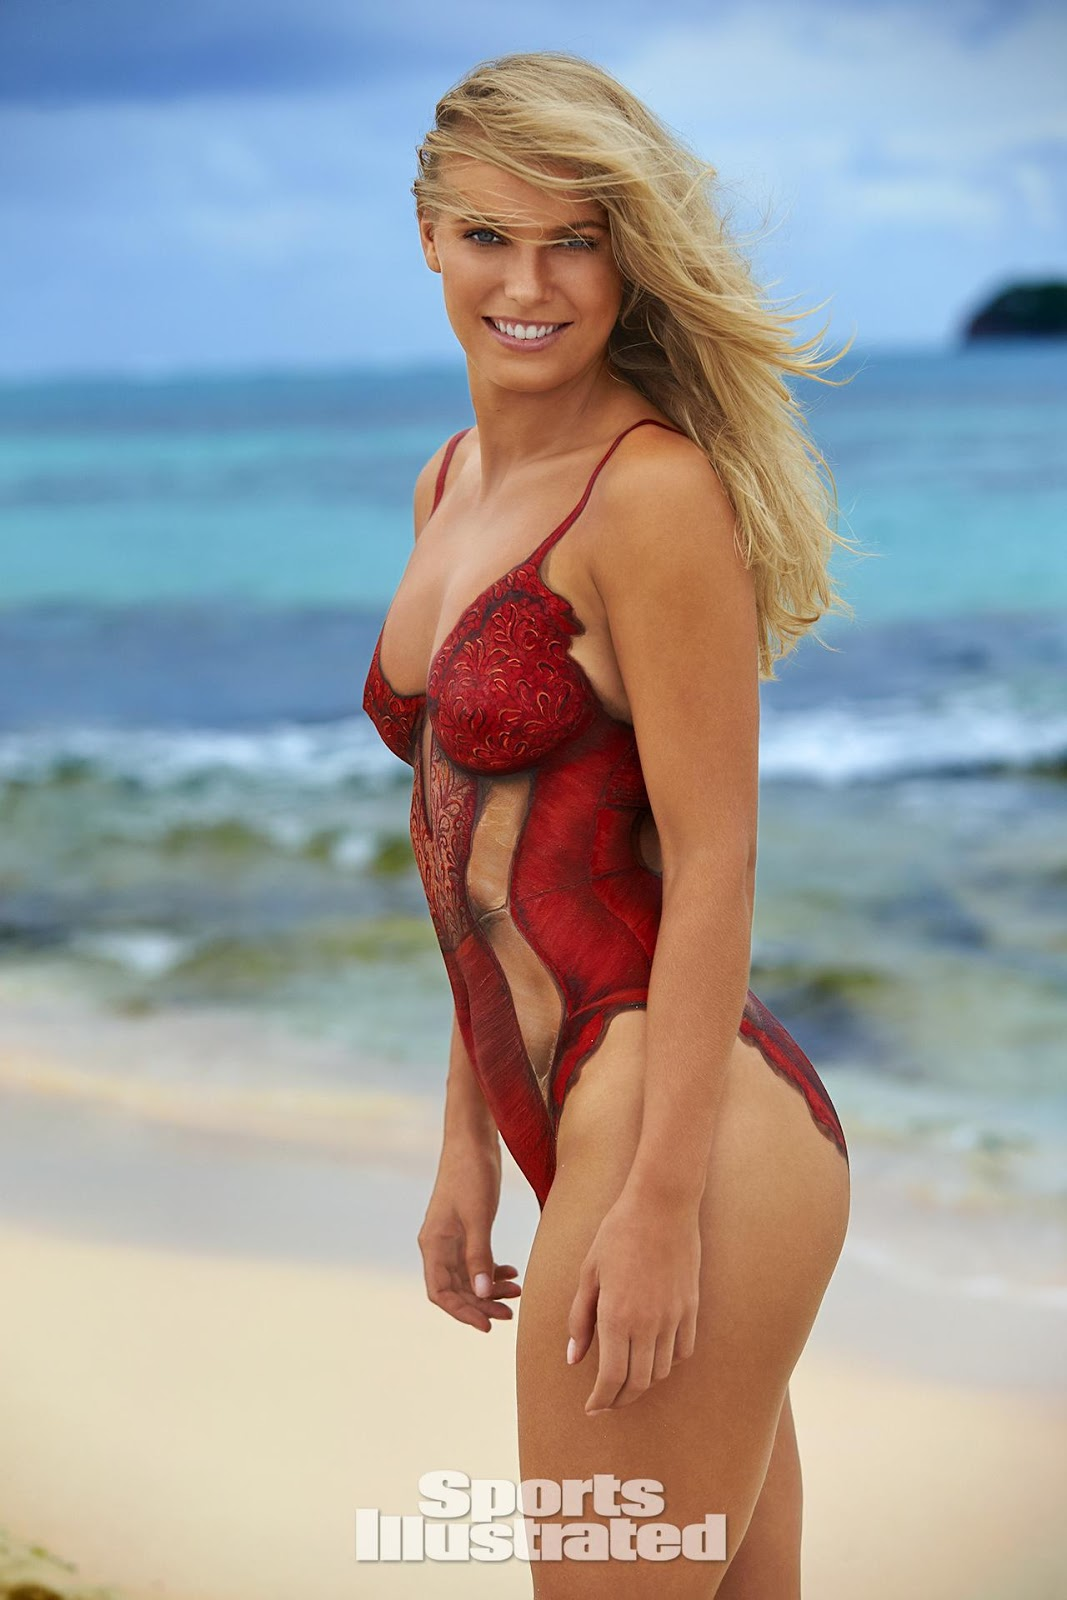 Sports illustrated swimsuit body paint